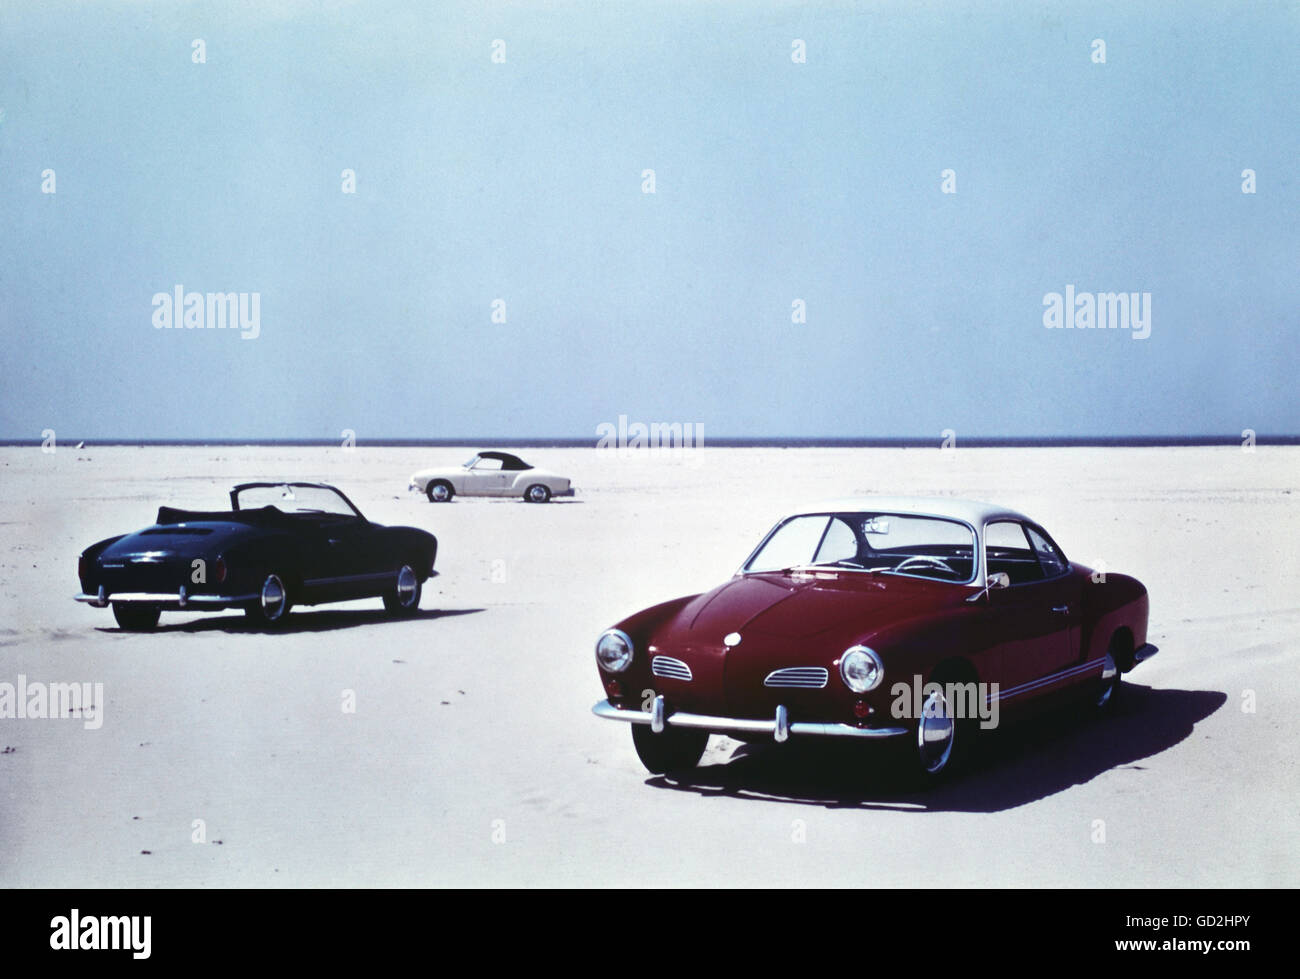 transport / transportation, cars, Volkswagen, VW 1500 Karmann-Ghia coupe and convertible, vehicle variants 14, Germany, - Stock Image